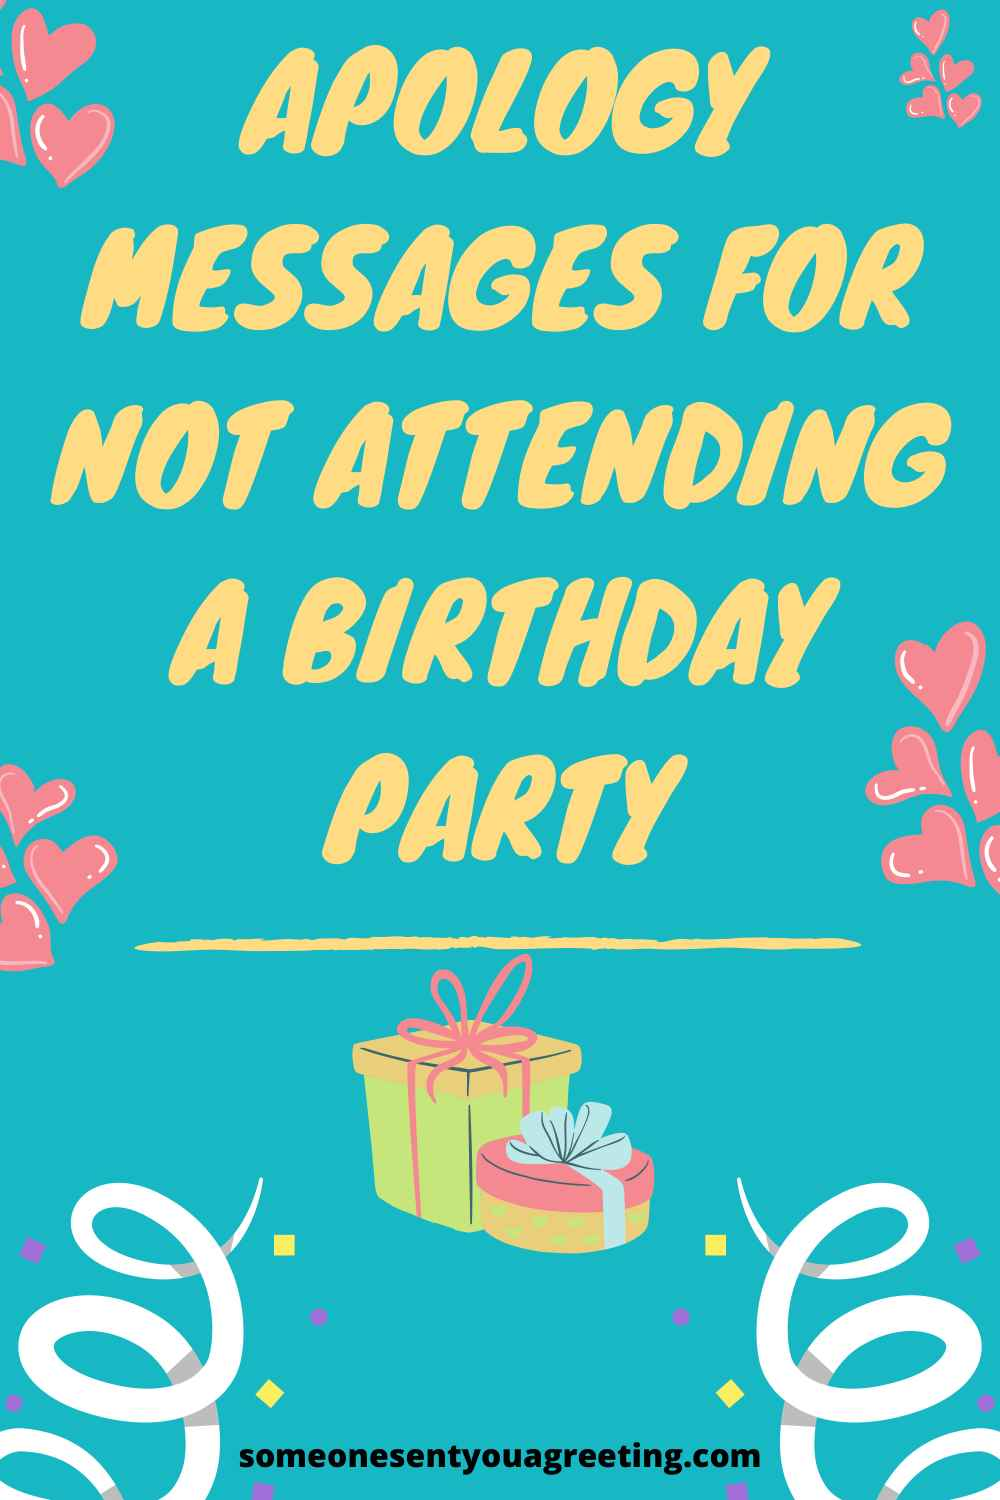 apology messages for not attending a birthday party